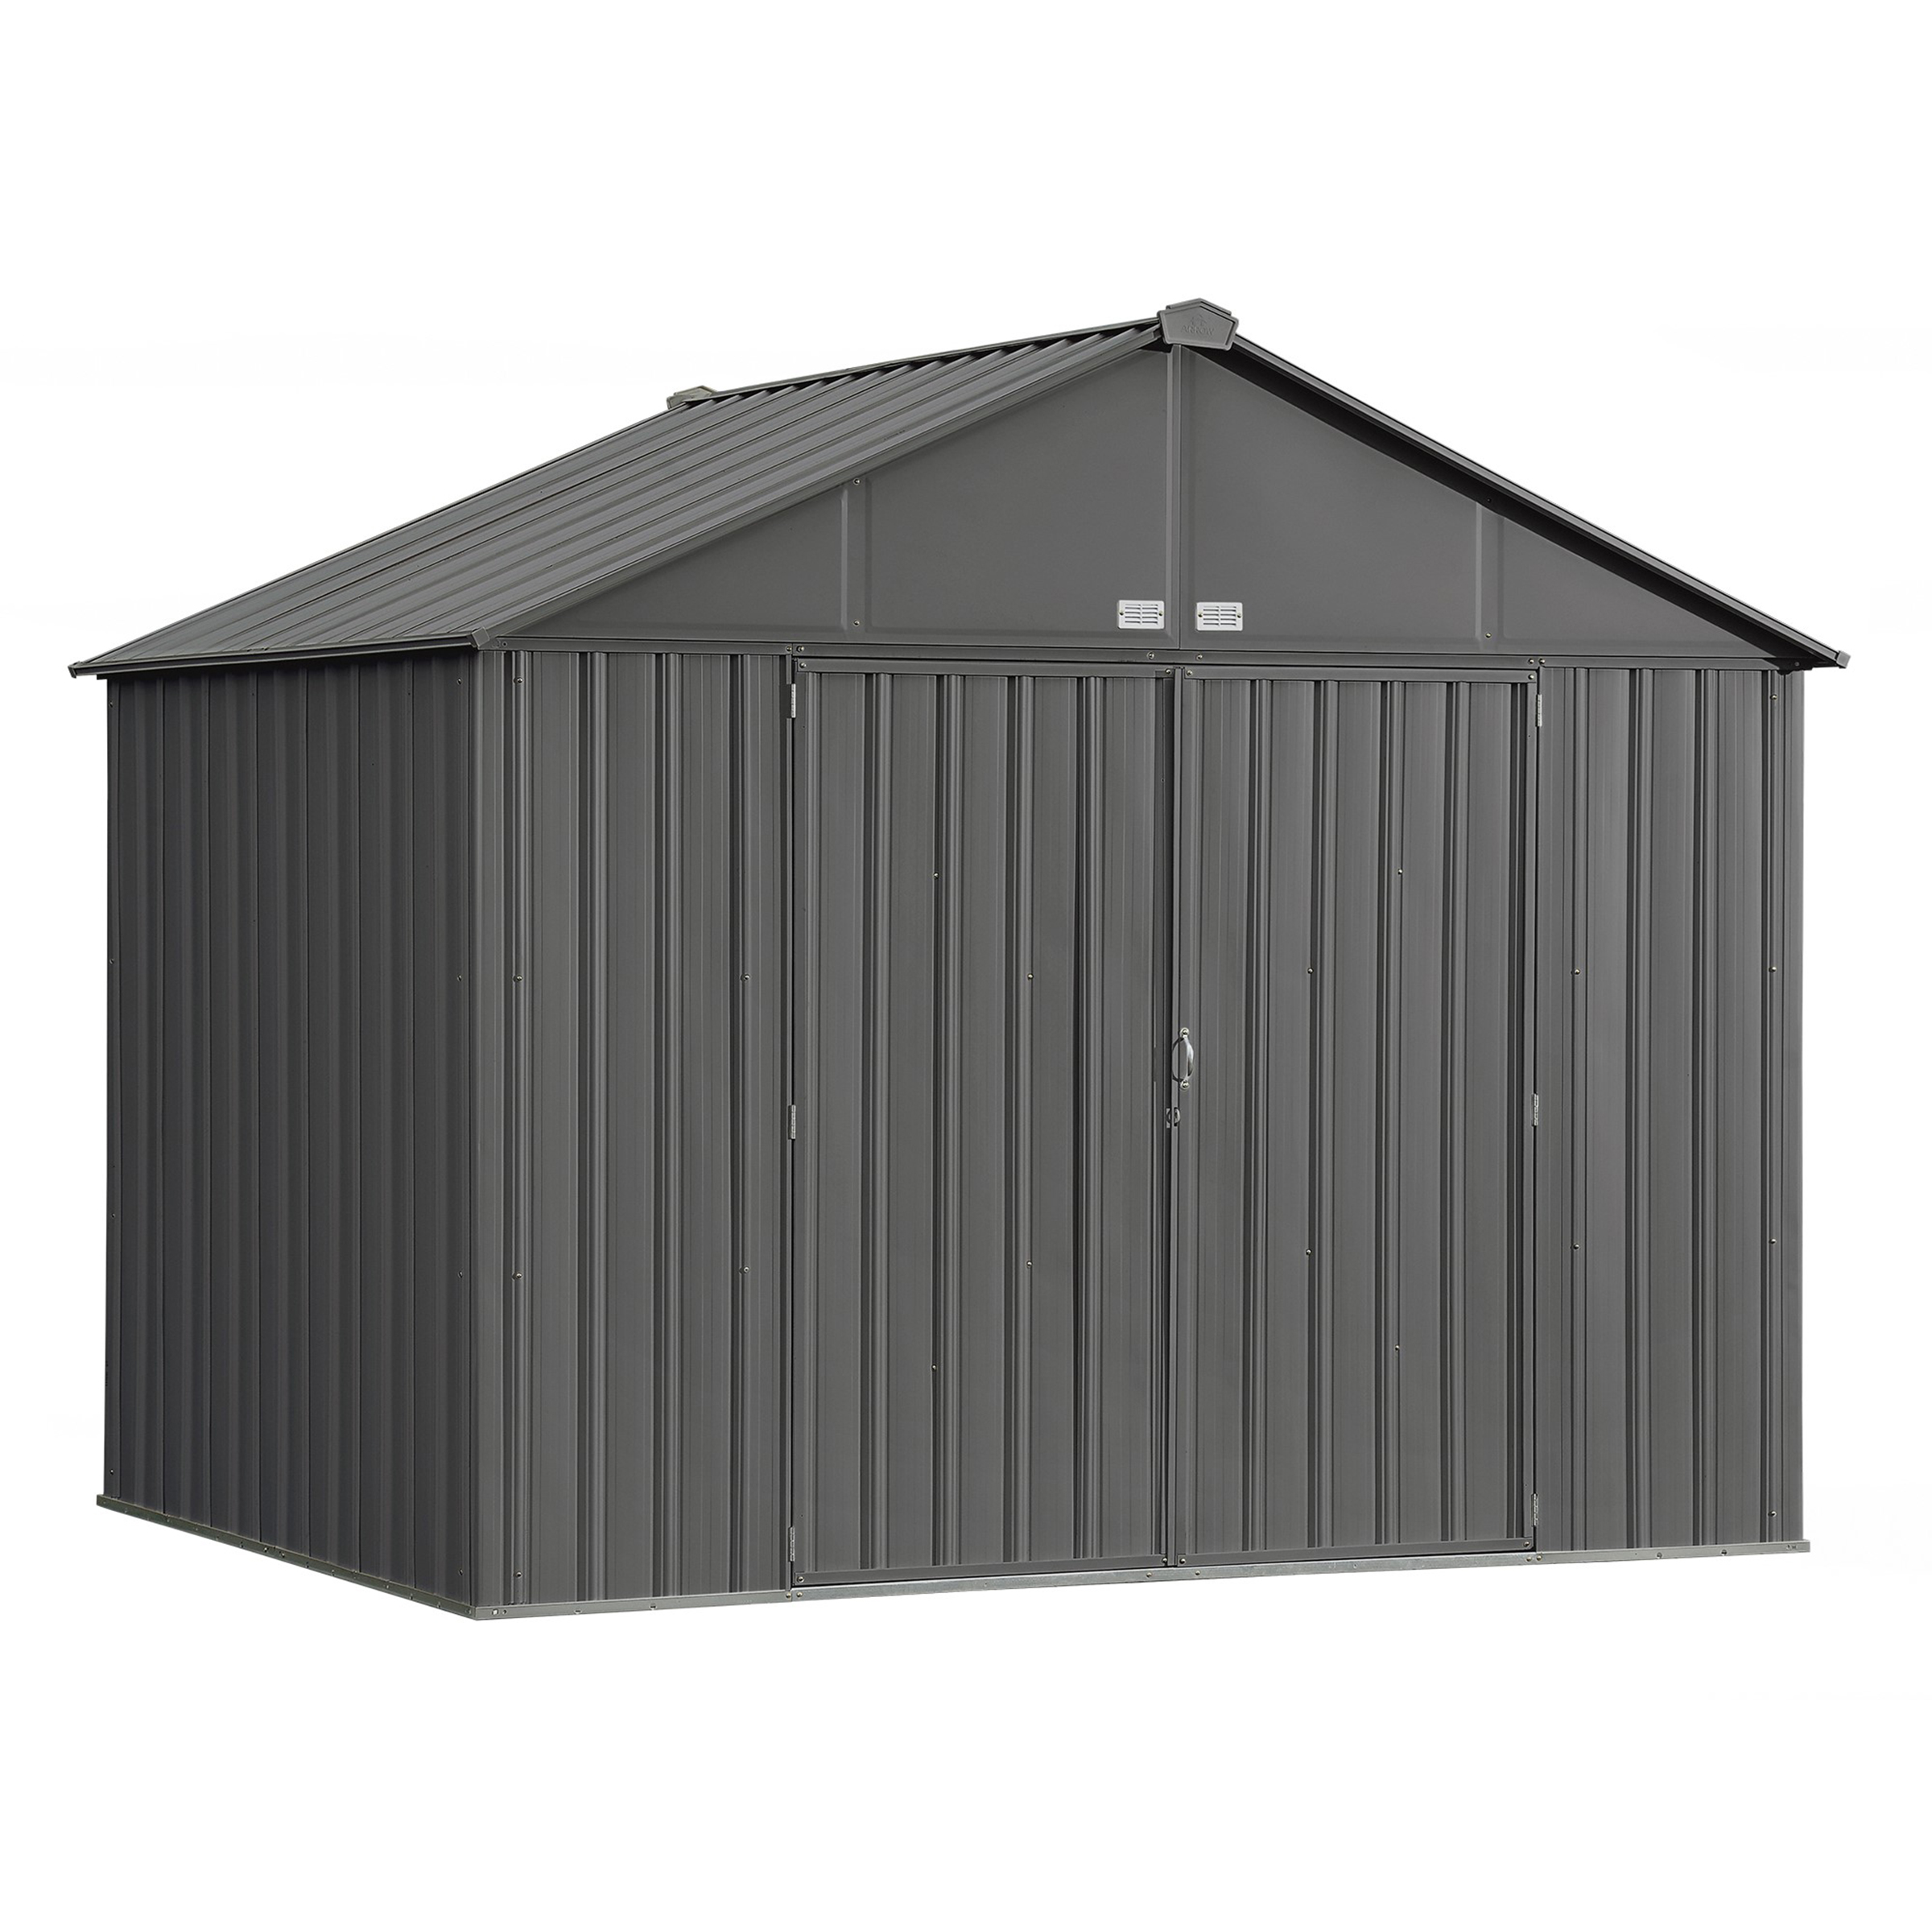 EZEE Shed, 10x8, Extra High Gable, 72 in walls, Charcoal